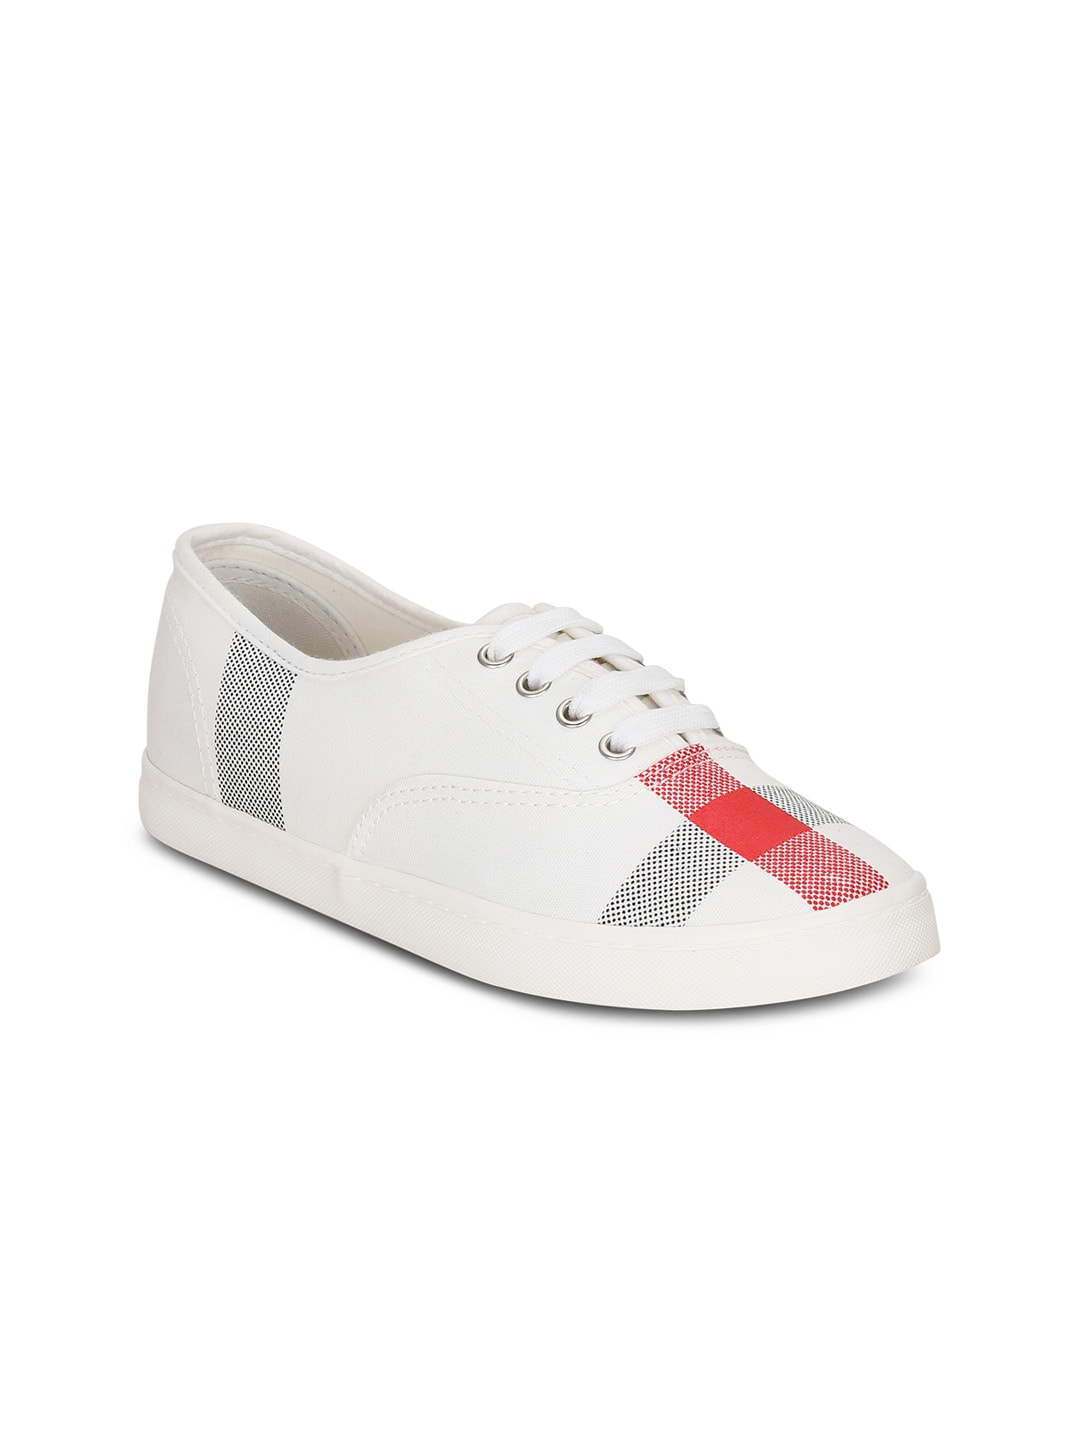 Get Glamr Women White Sneakers image